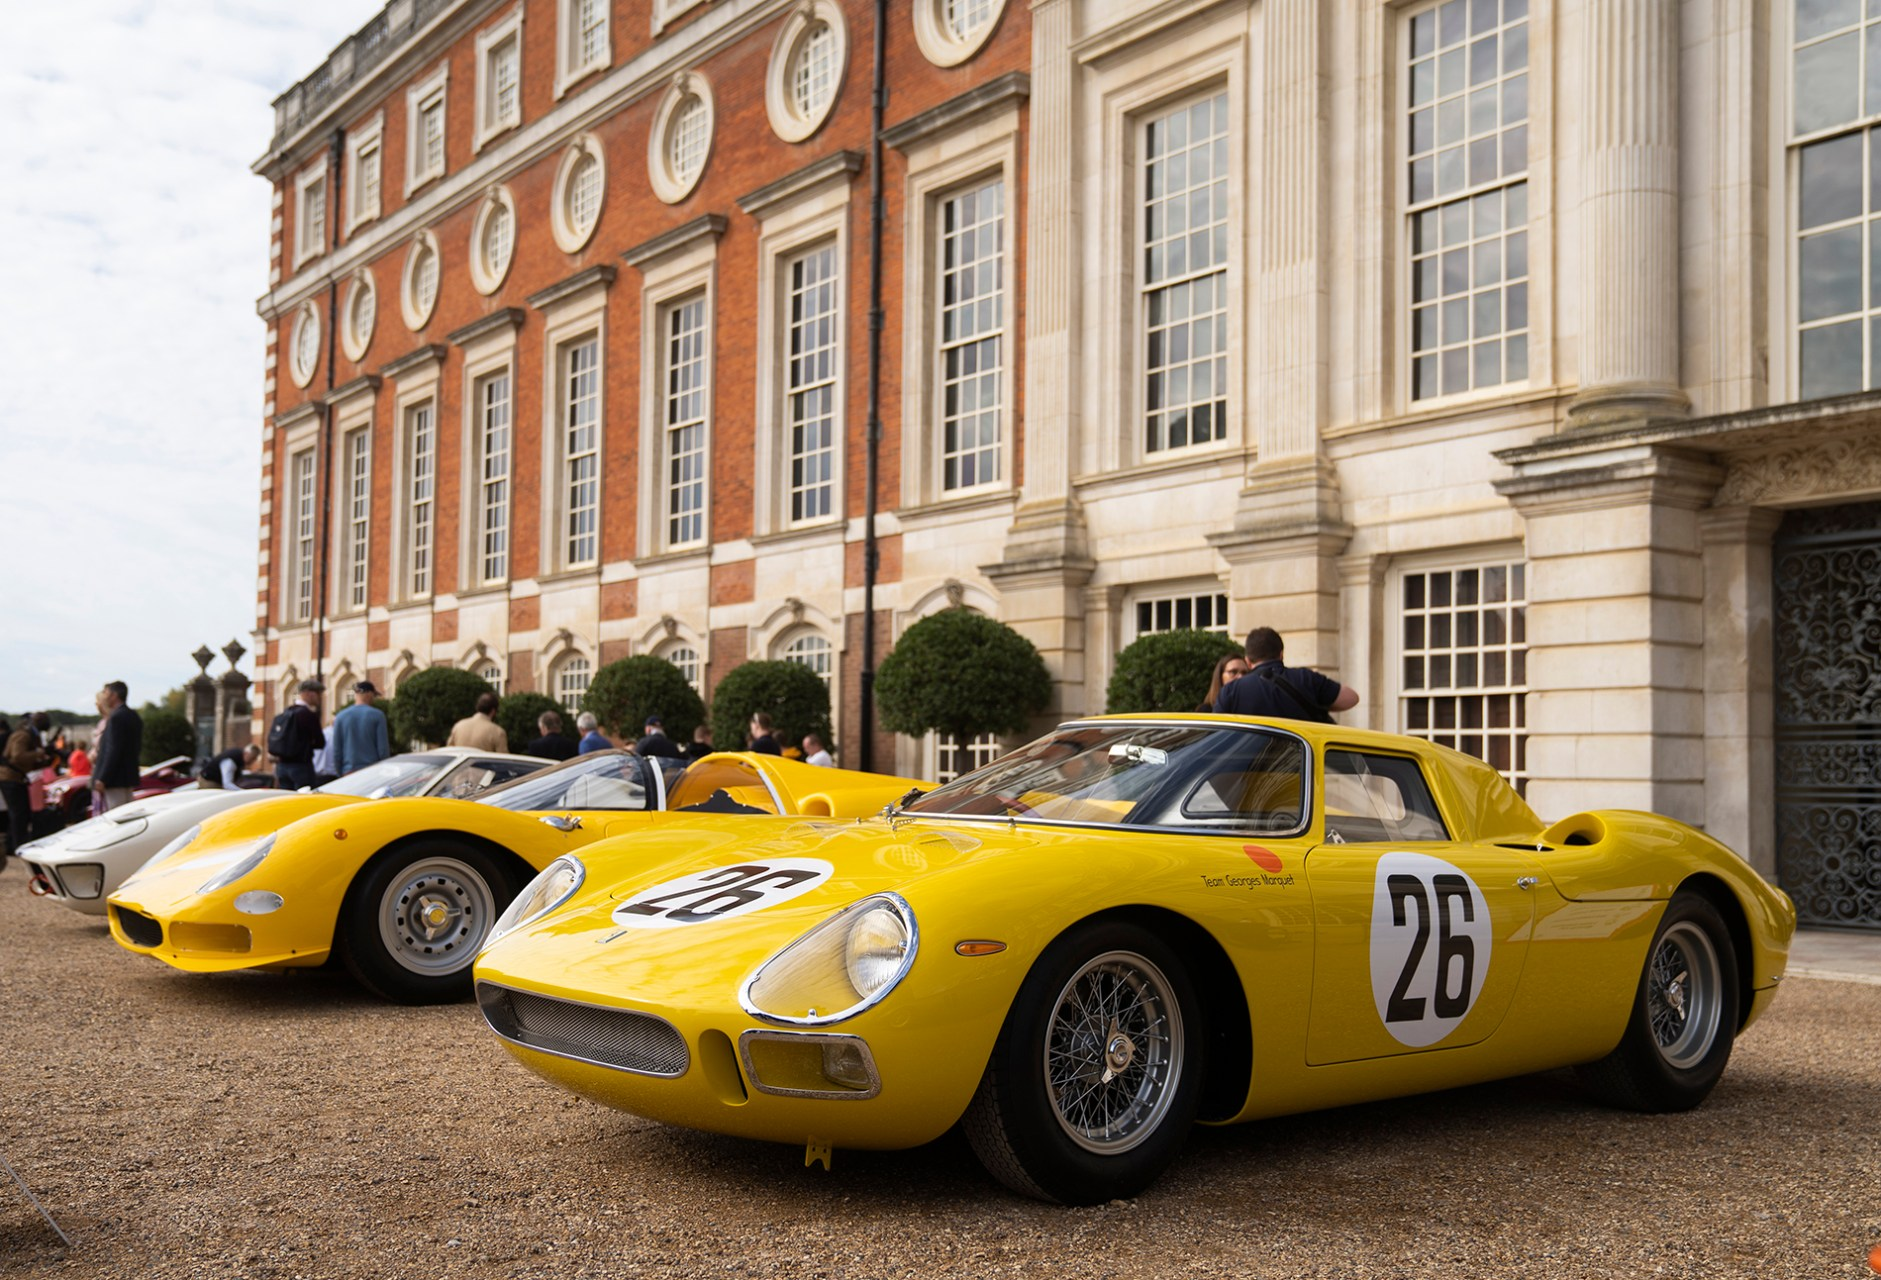 2020 Concours of Elegance at Hampton Court Palace